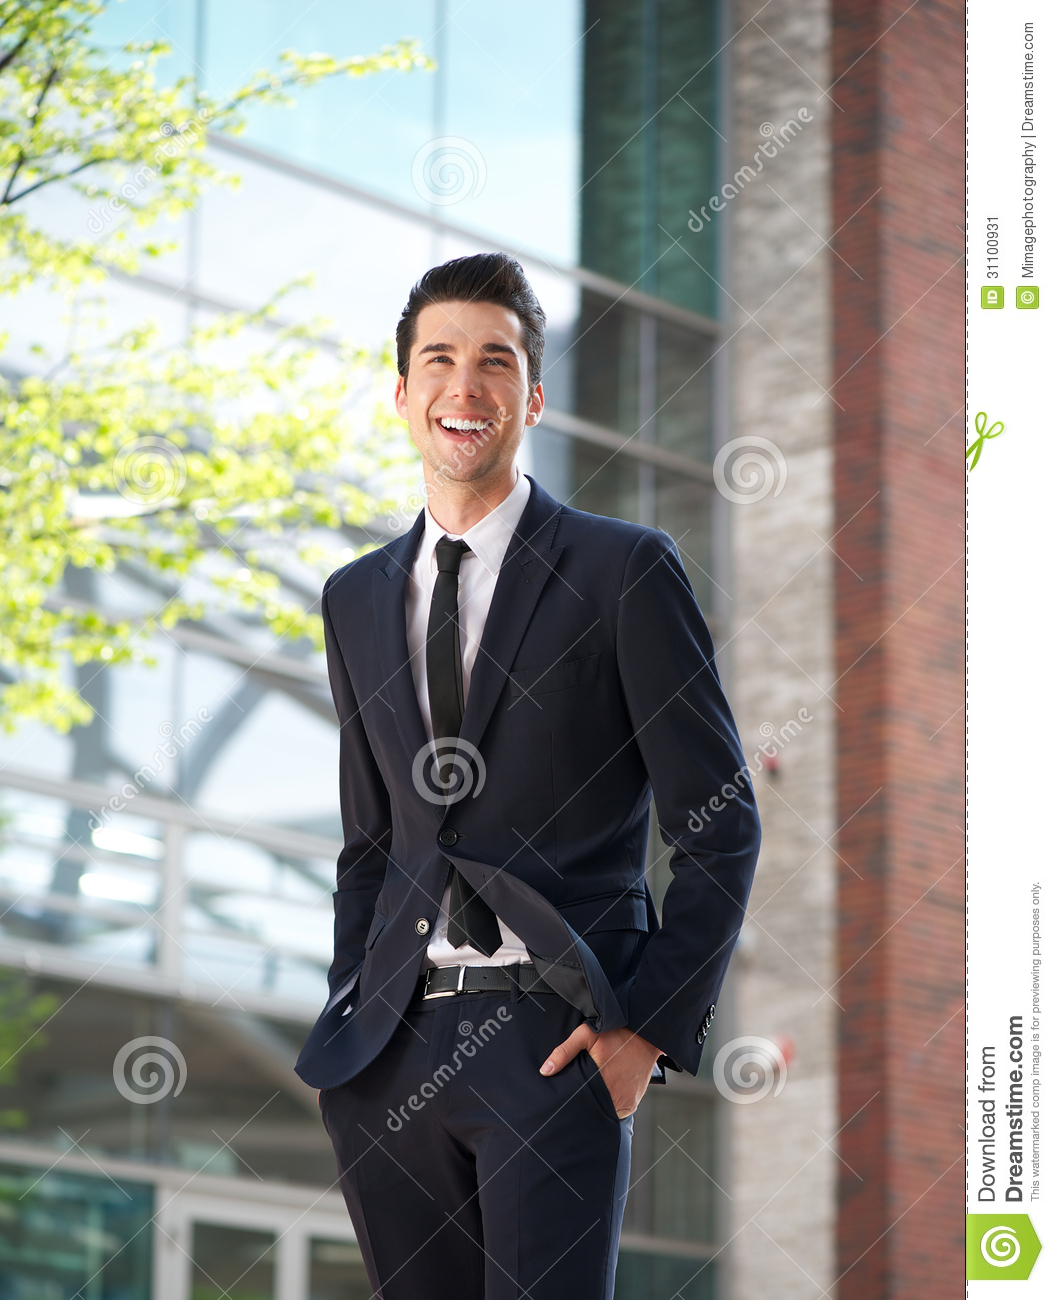 happy businessman walking to work stock image image  happy businessman walking to work